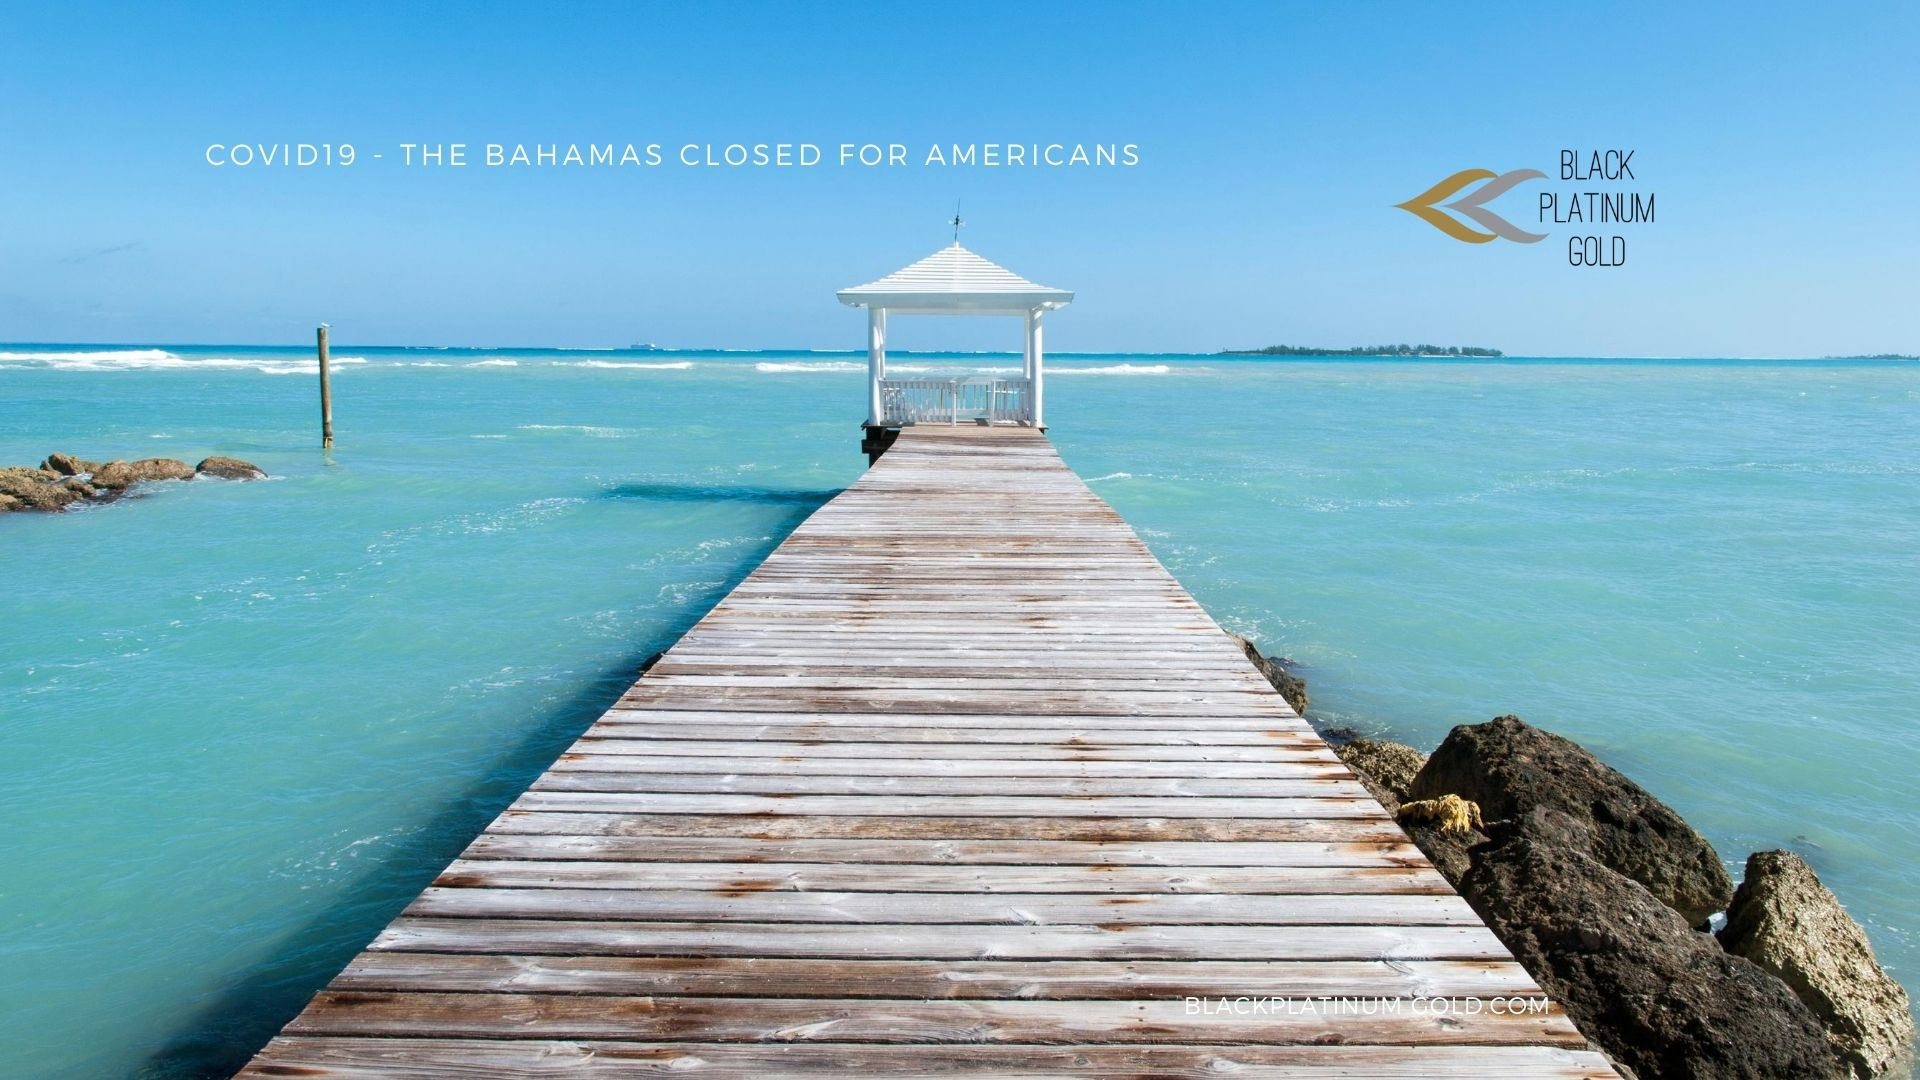 COVID19 - The Bahamas closed for Americans - By Black Platinum Gold- black platinum gold(1)